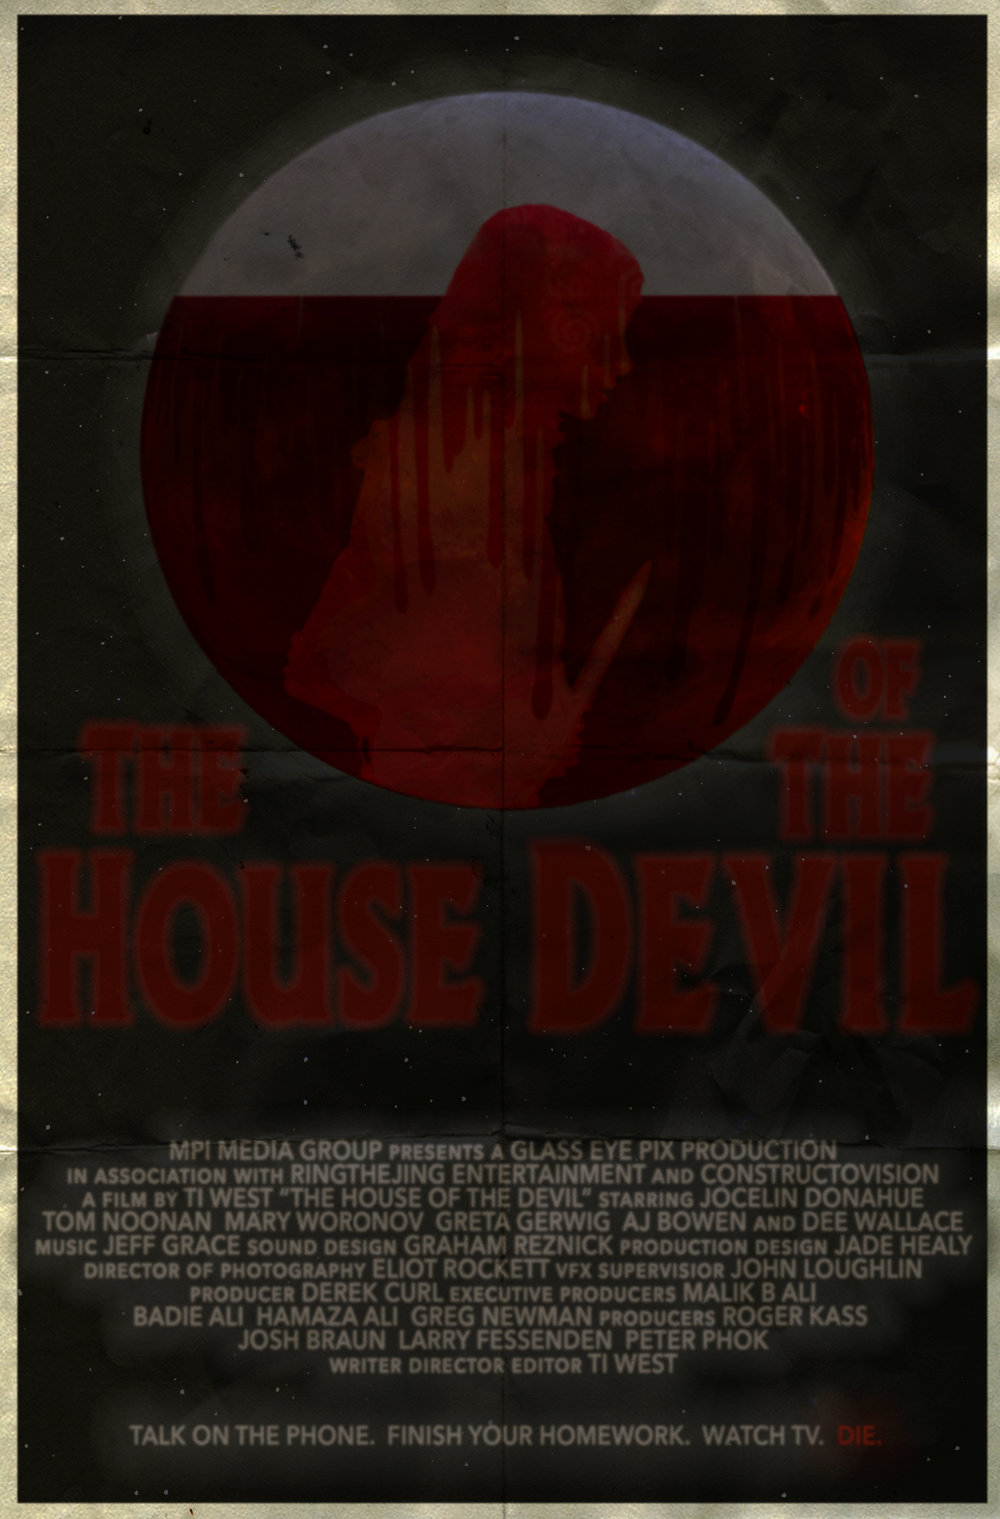 house of the devil poster w titles.jpg